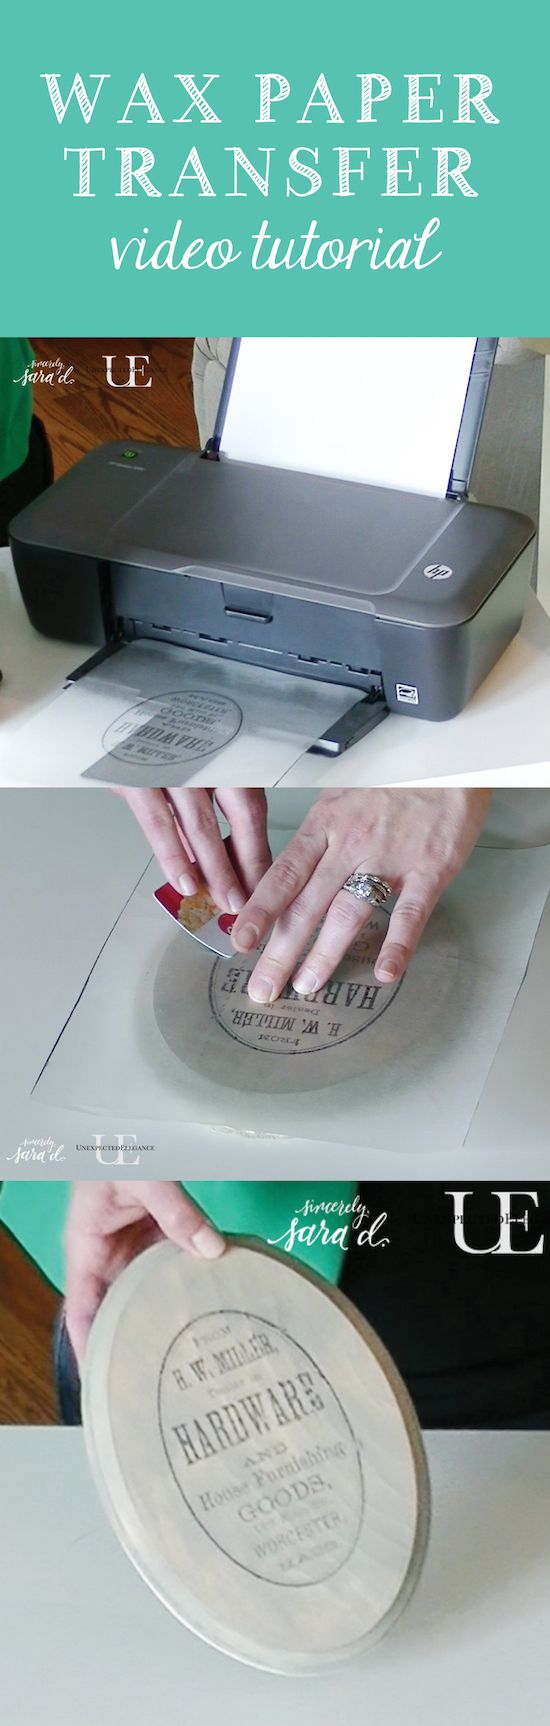 Wax Paper Image Transfer.